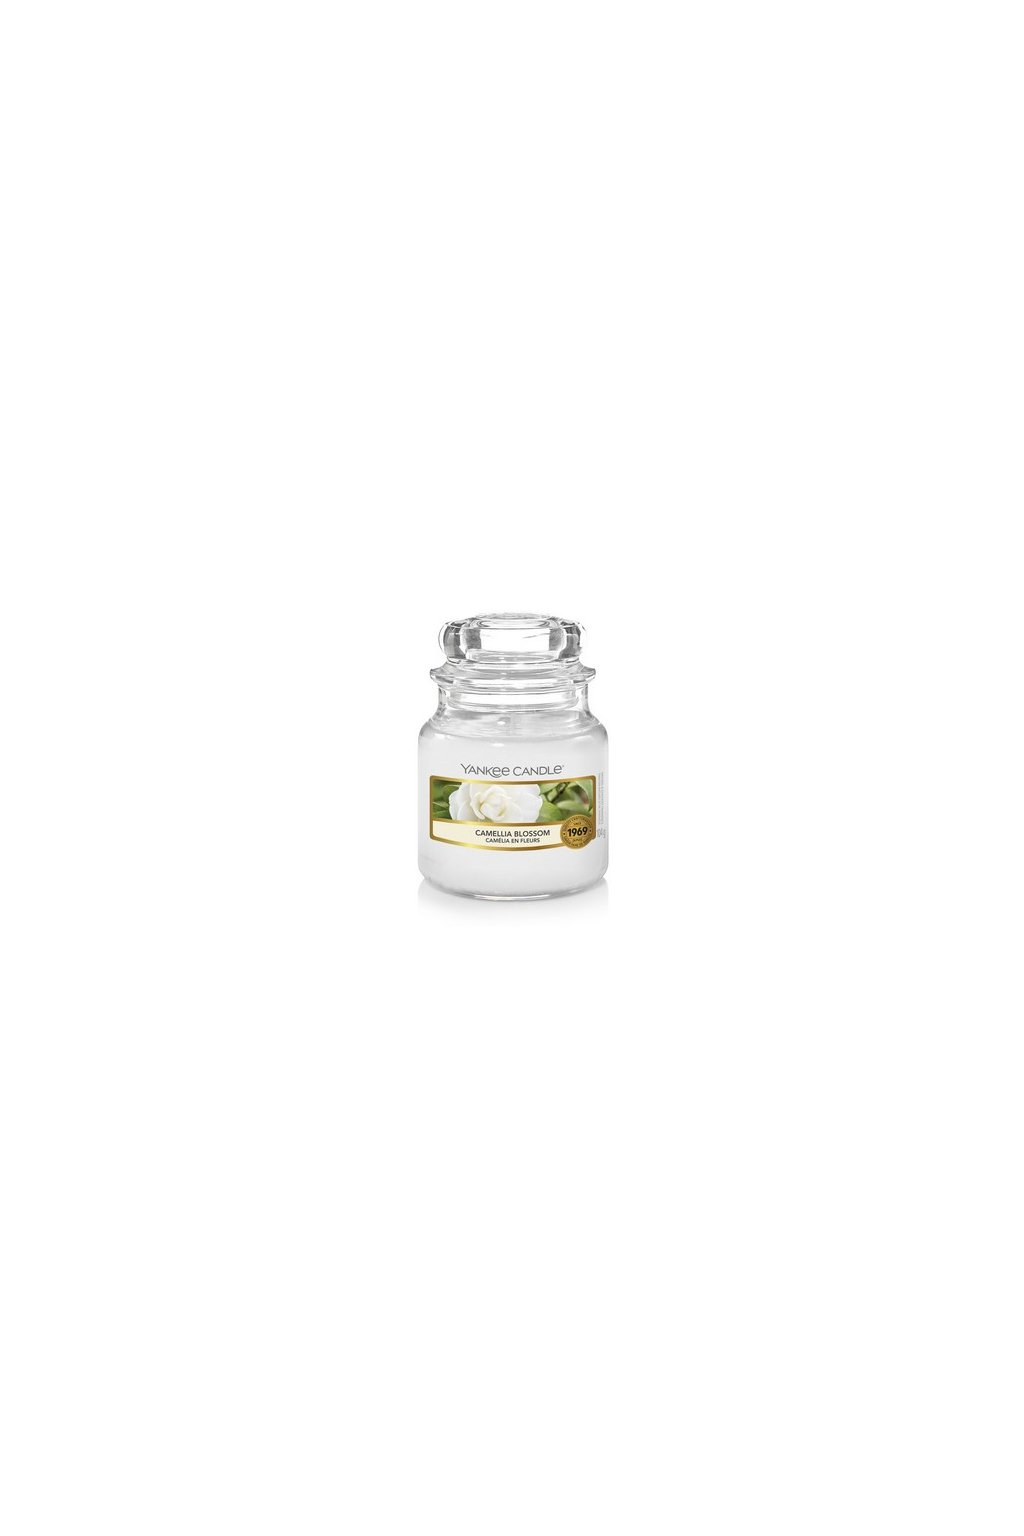 Yankee Candle Camellia Blossom 104g